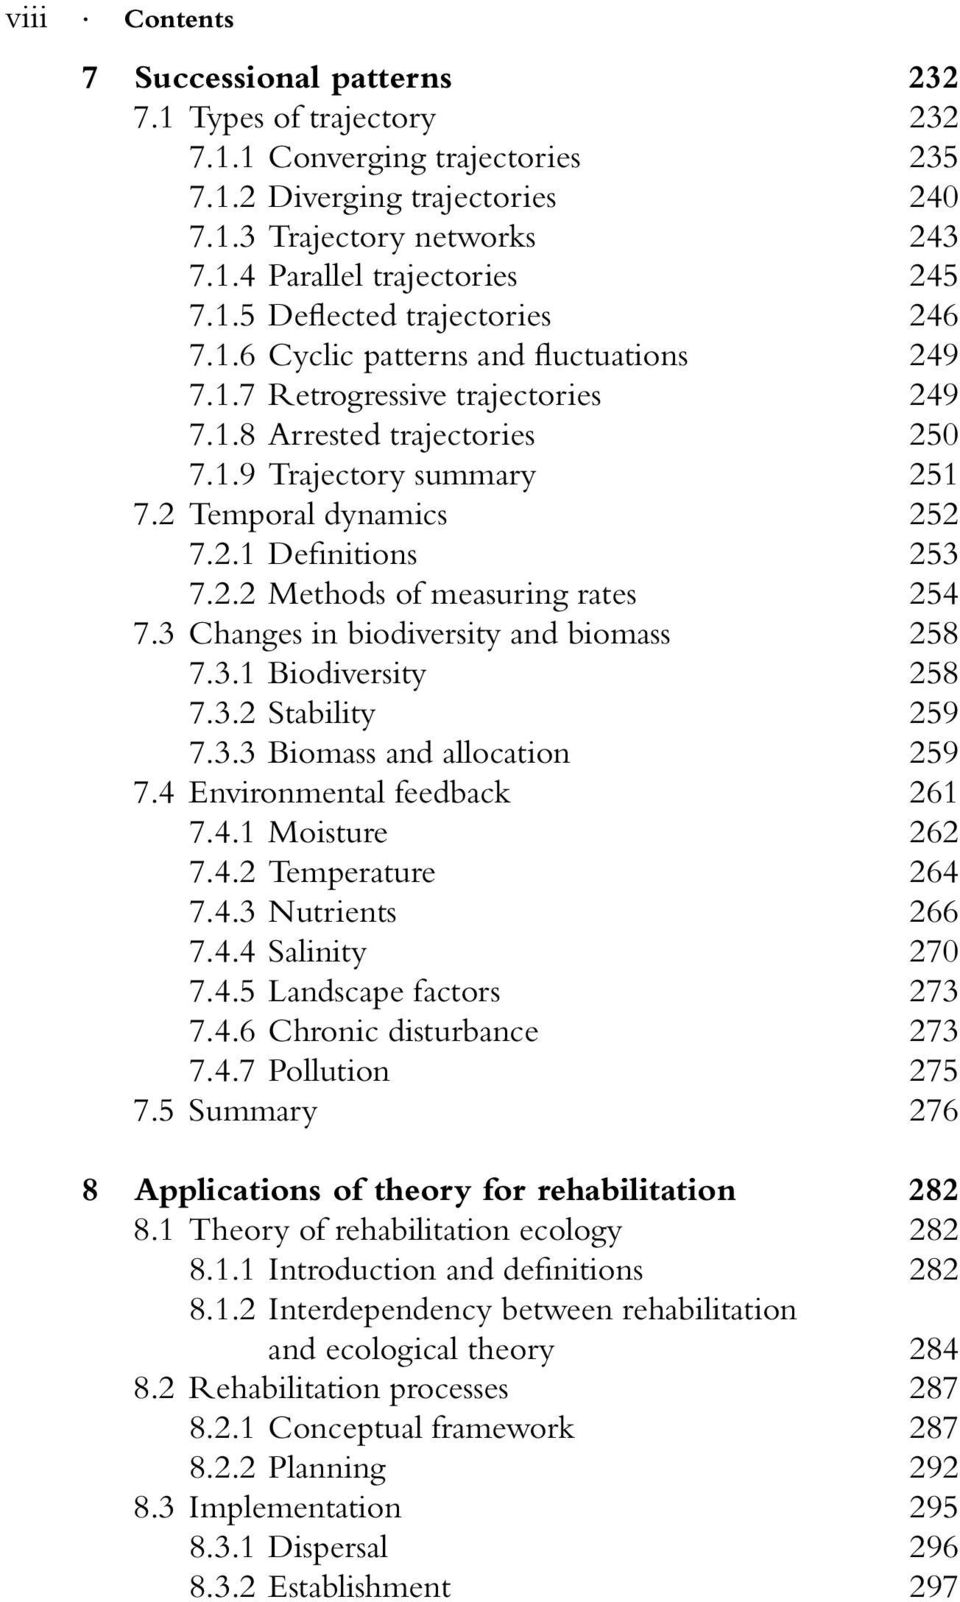 2.1 Definitions 253 7.2.2 Methods of measuring rates 254 7.3 Changes in biodiversity and biomass 258 7.3.1 Biodiversity 258 7.3.2 Stability 259 7.3.3 Biomass and allocation 259 7.